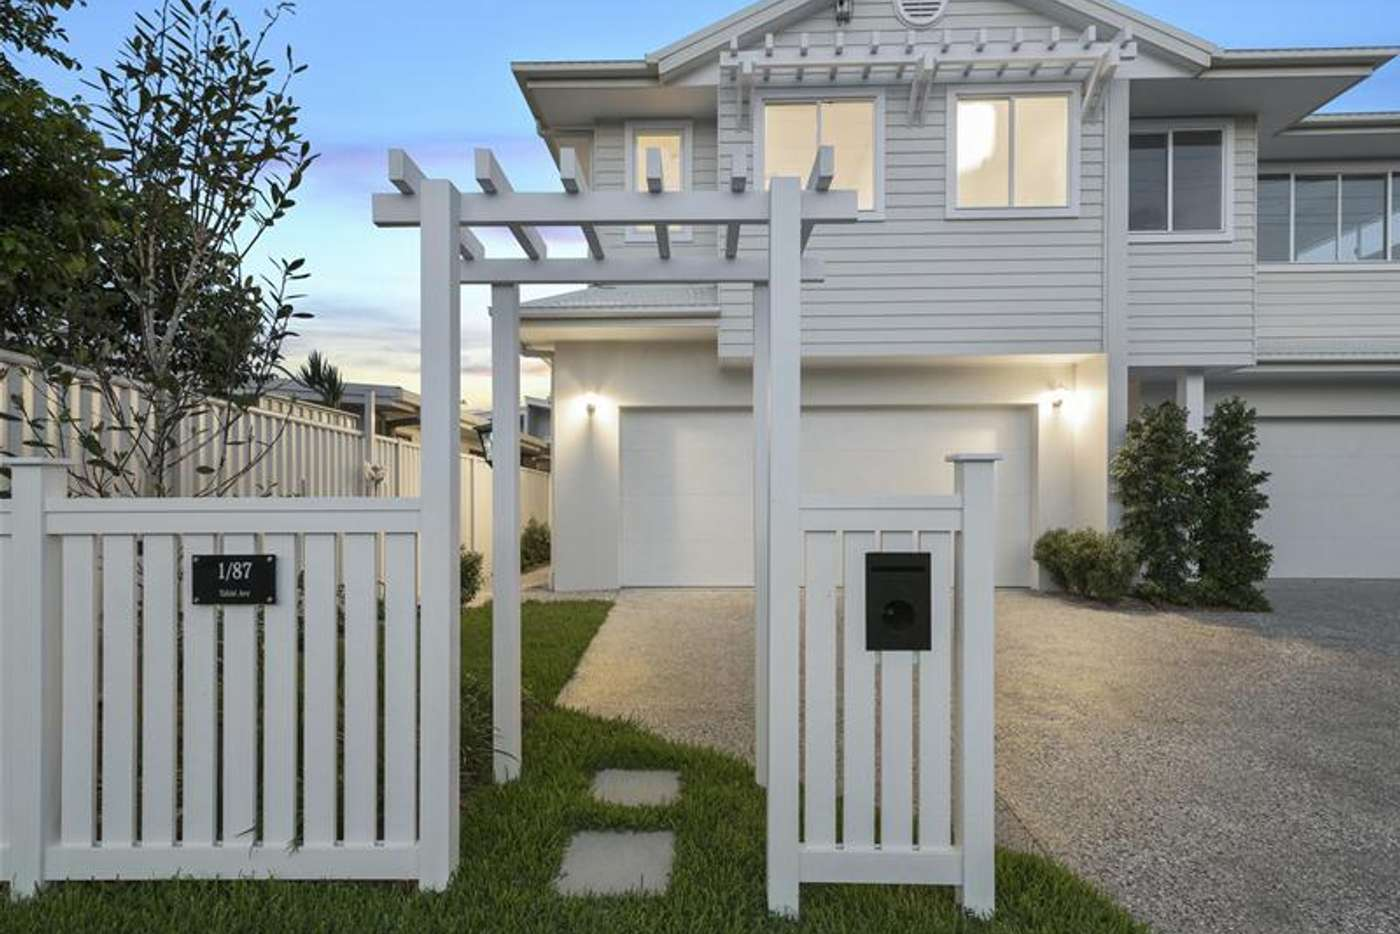 Main view of Homely townhouse listing, 1/87 Tahiti Avenue, Palm Beach QLD 4221